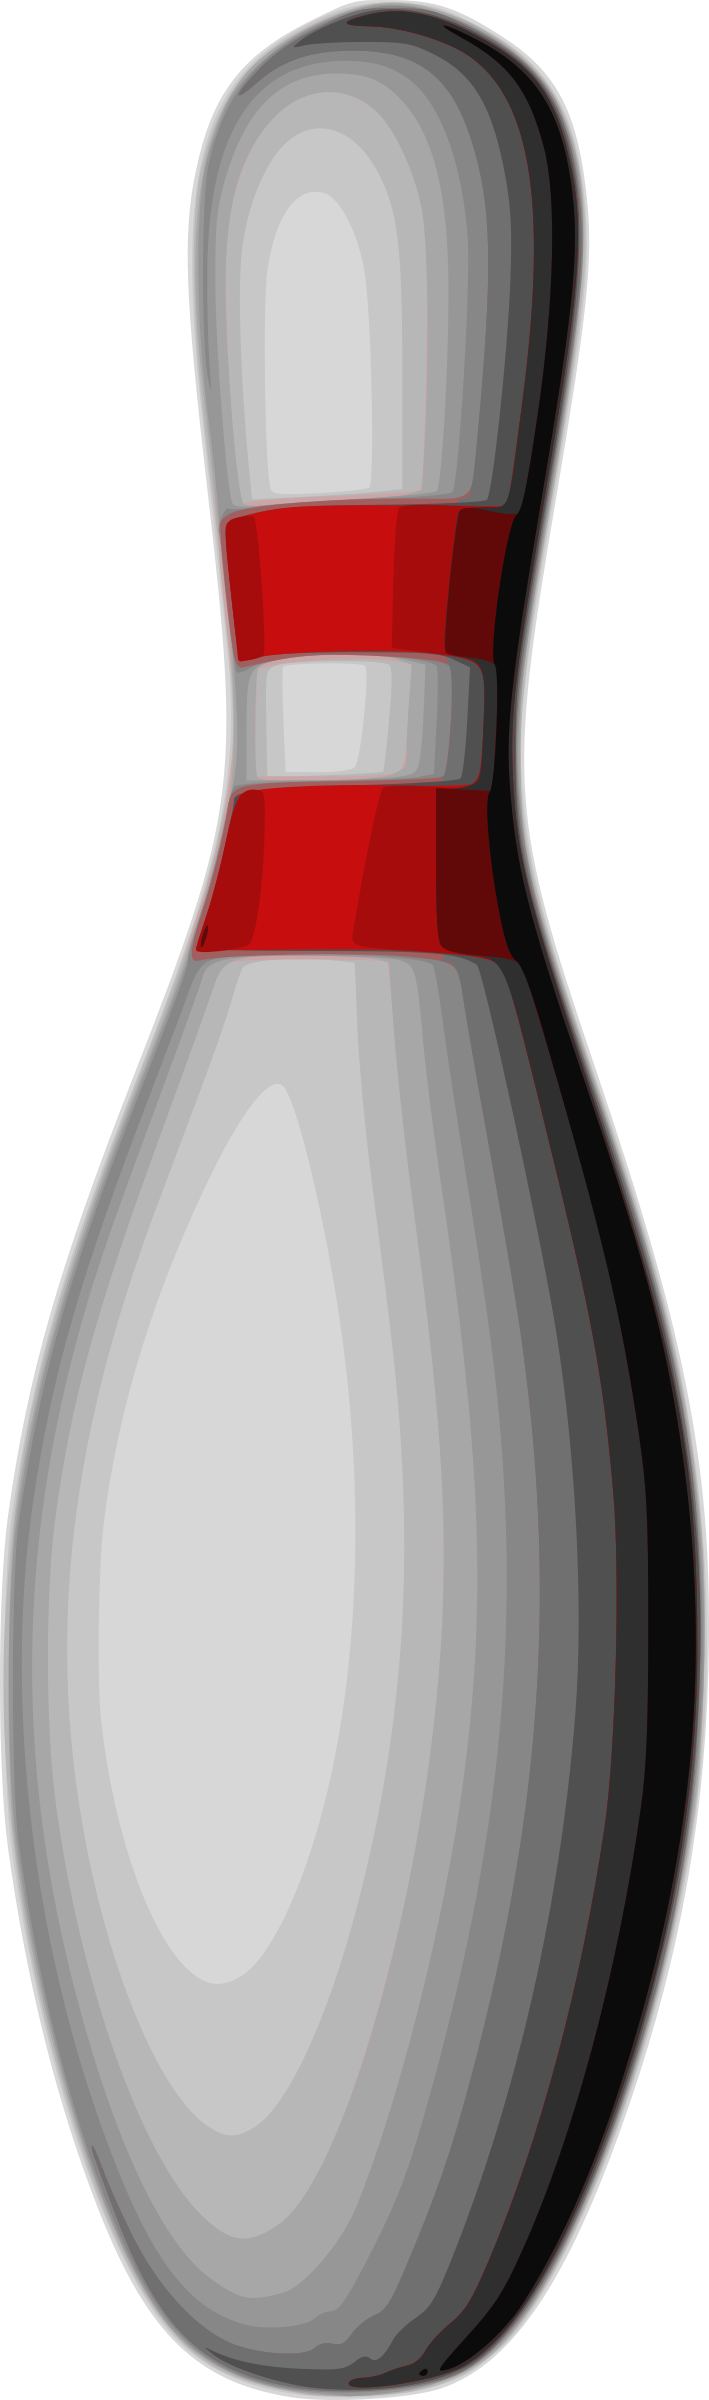 Bowling pin png. Icons free and downloads